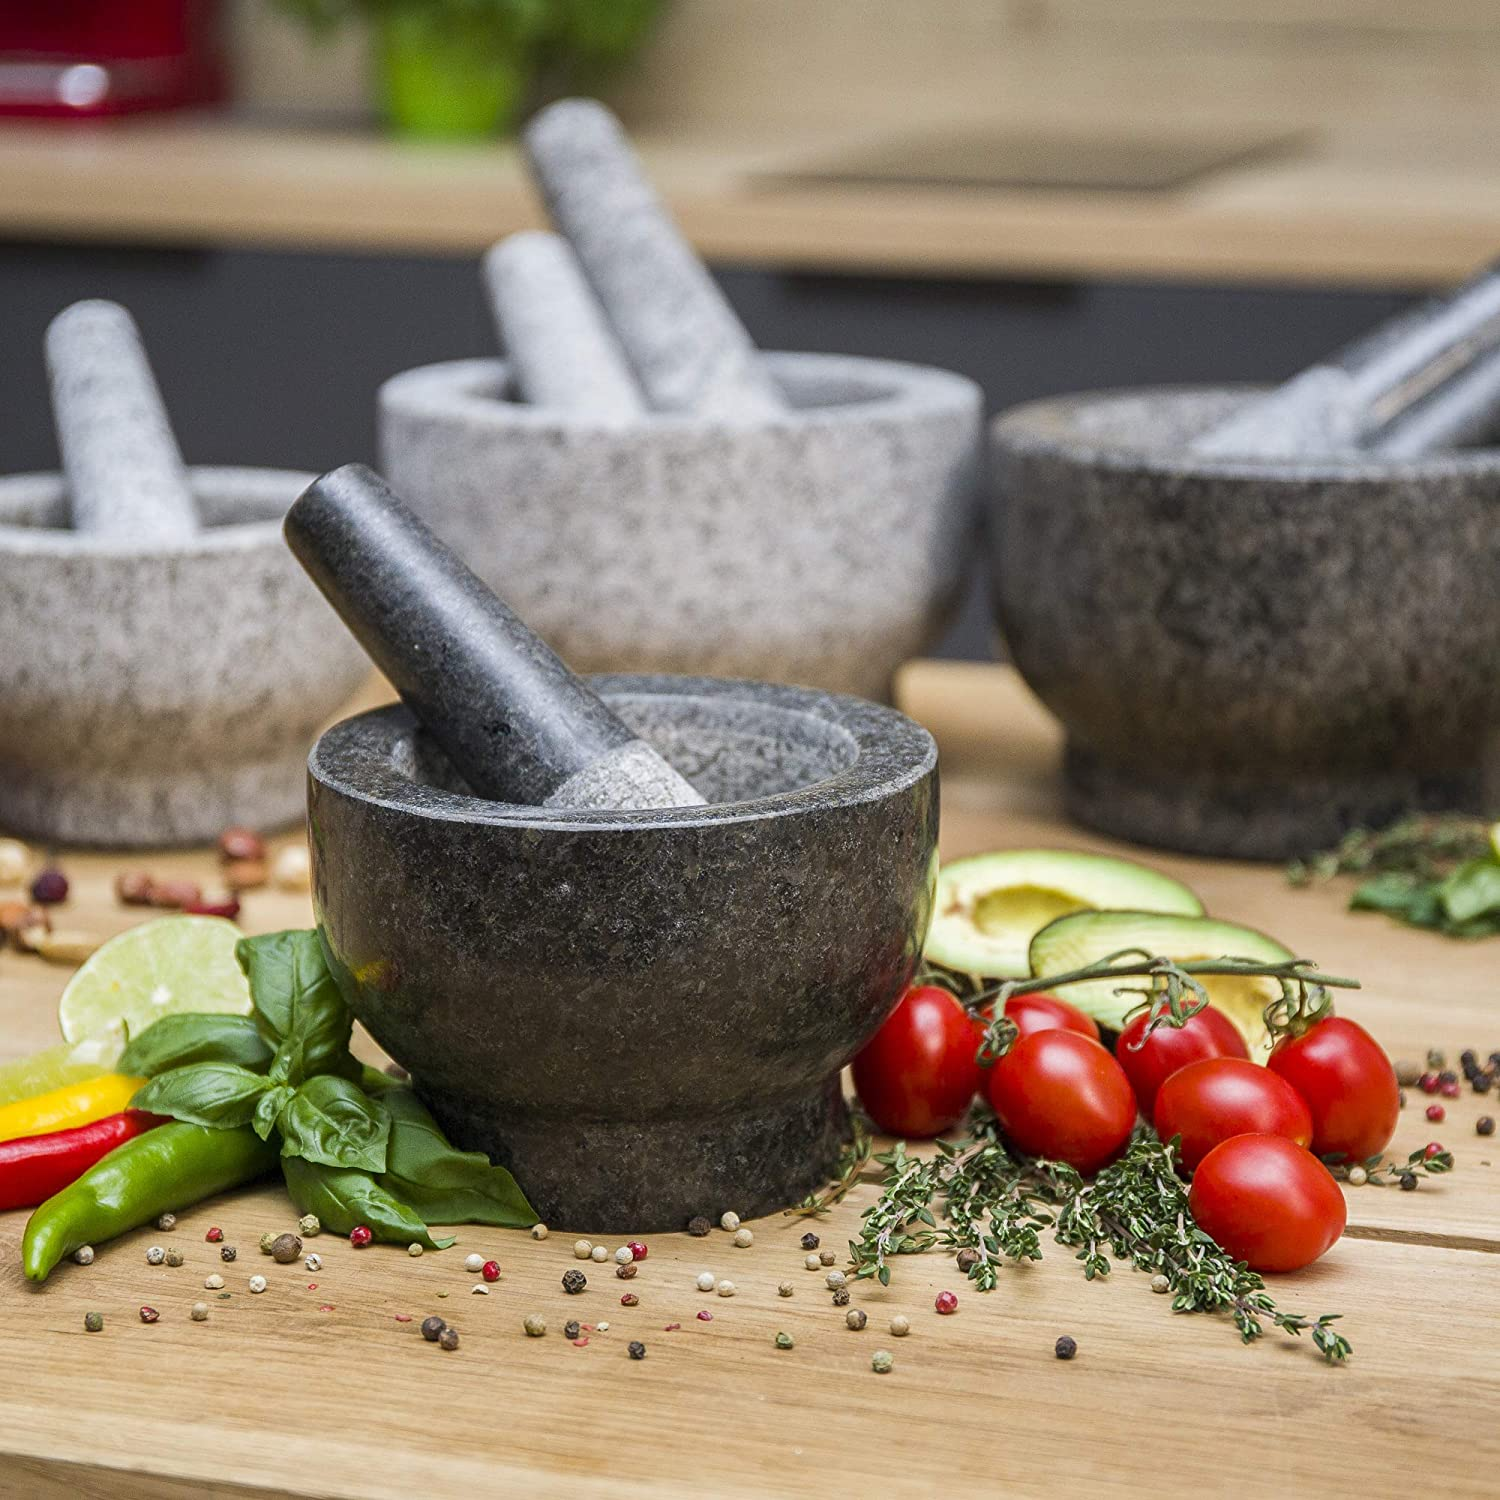 ChefSofi Mortar and Pestle Set - Black Polished Exterior - 6 inch - 2 Cup Capacity: Kitchen & Dining